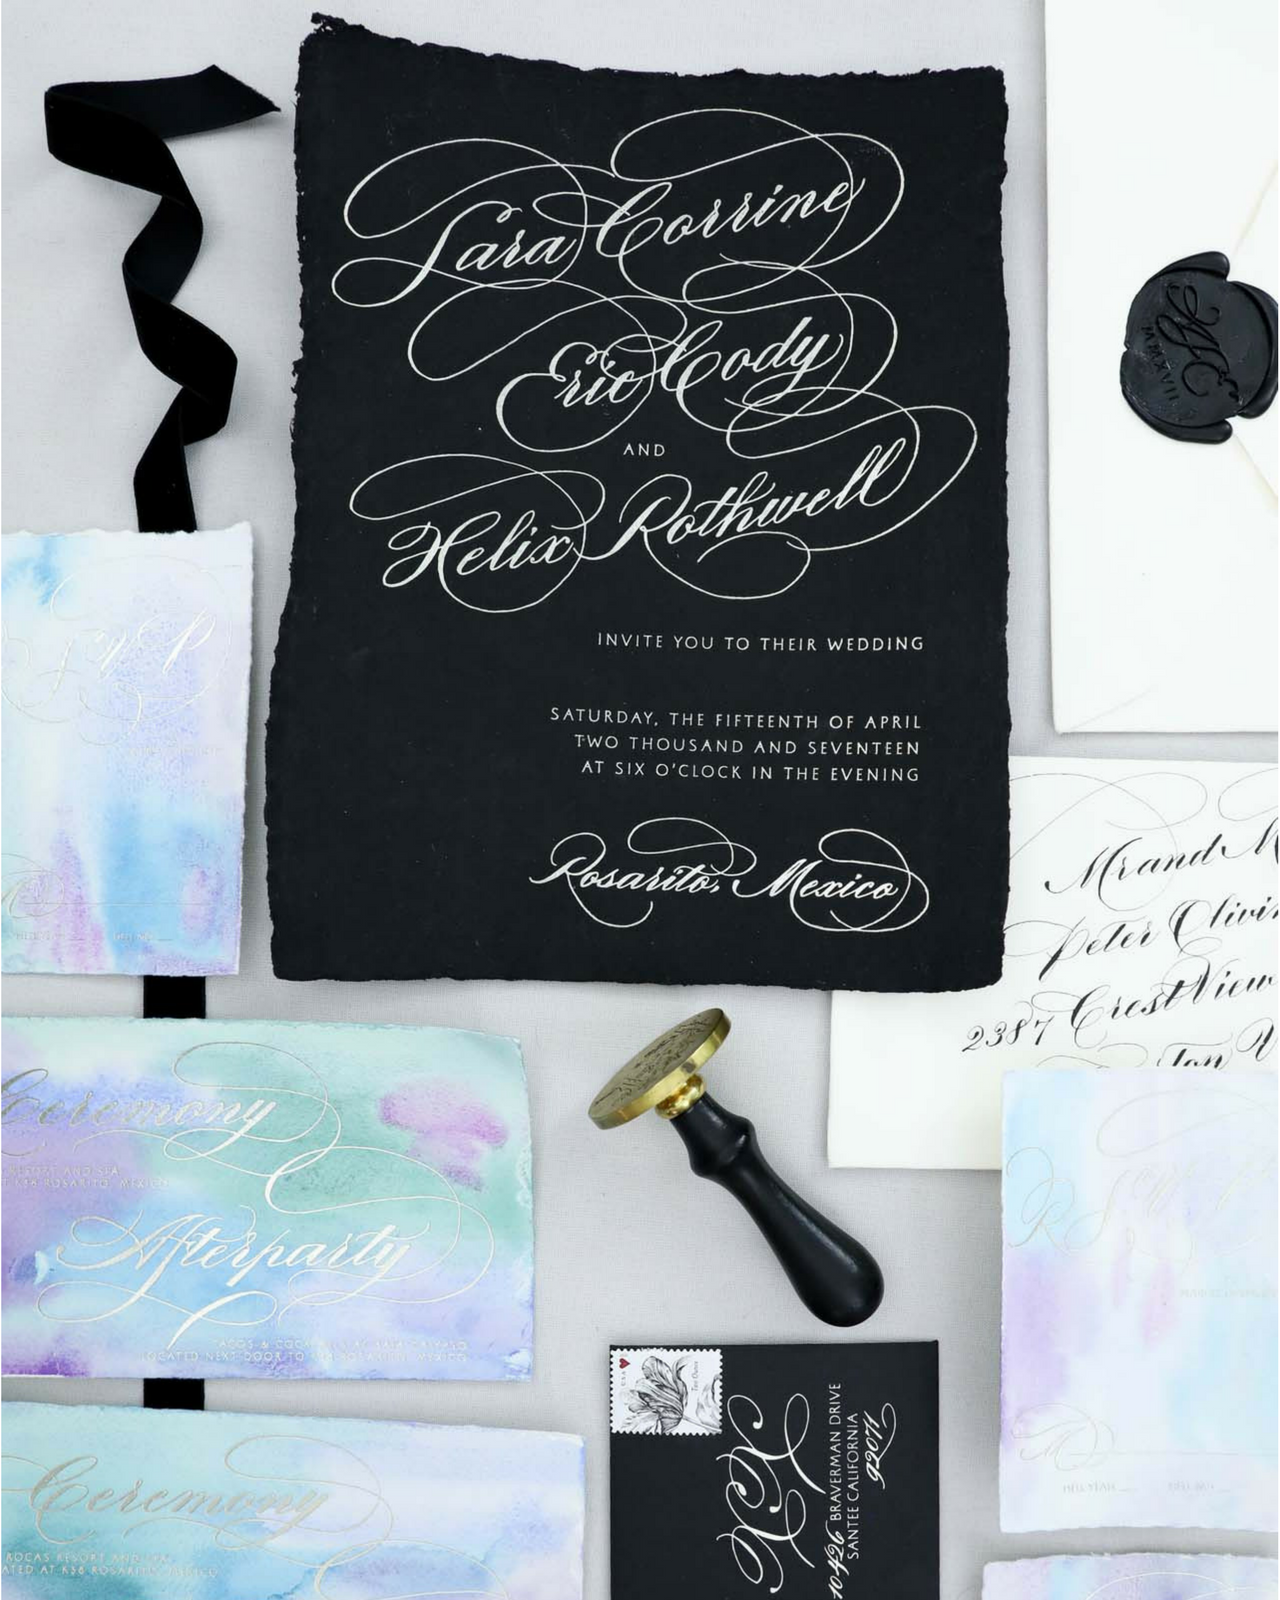 Dramatic Black Meets Romantic Mermaid Wedding Invitations By Design House  Of Moira